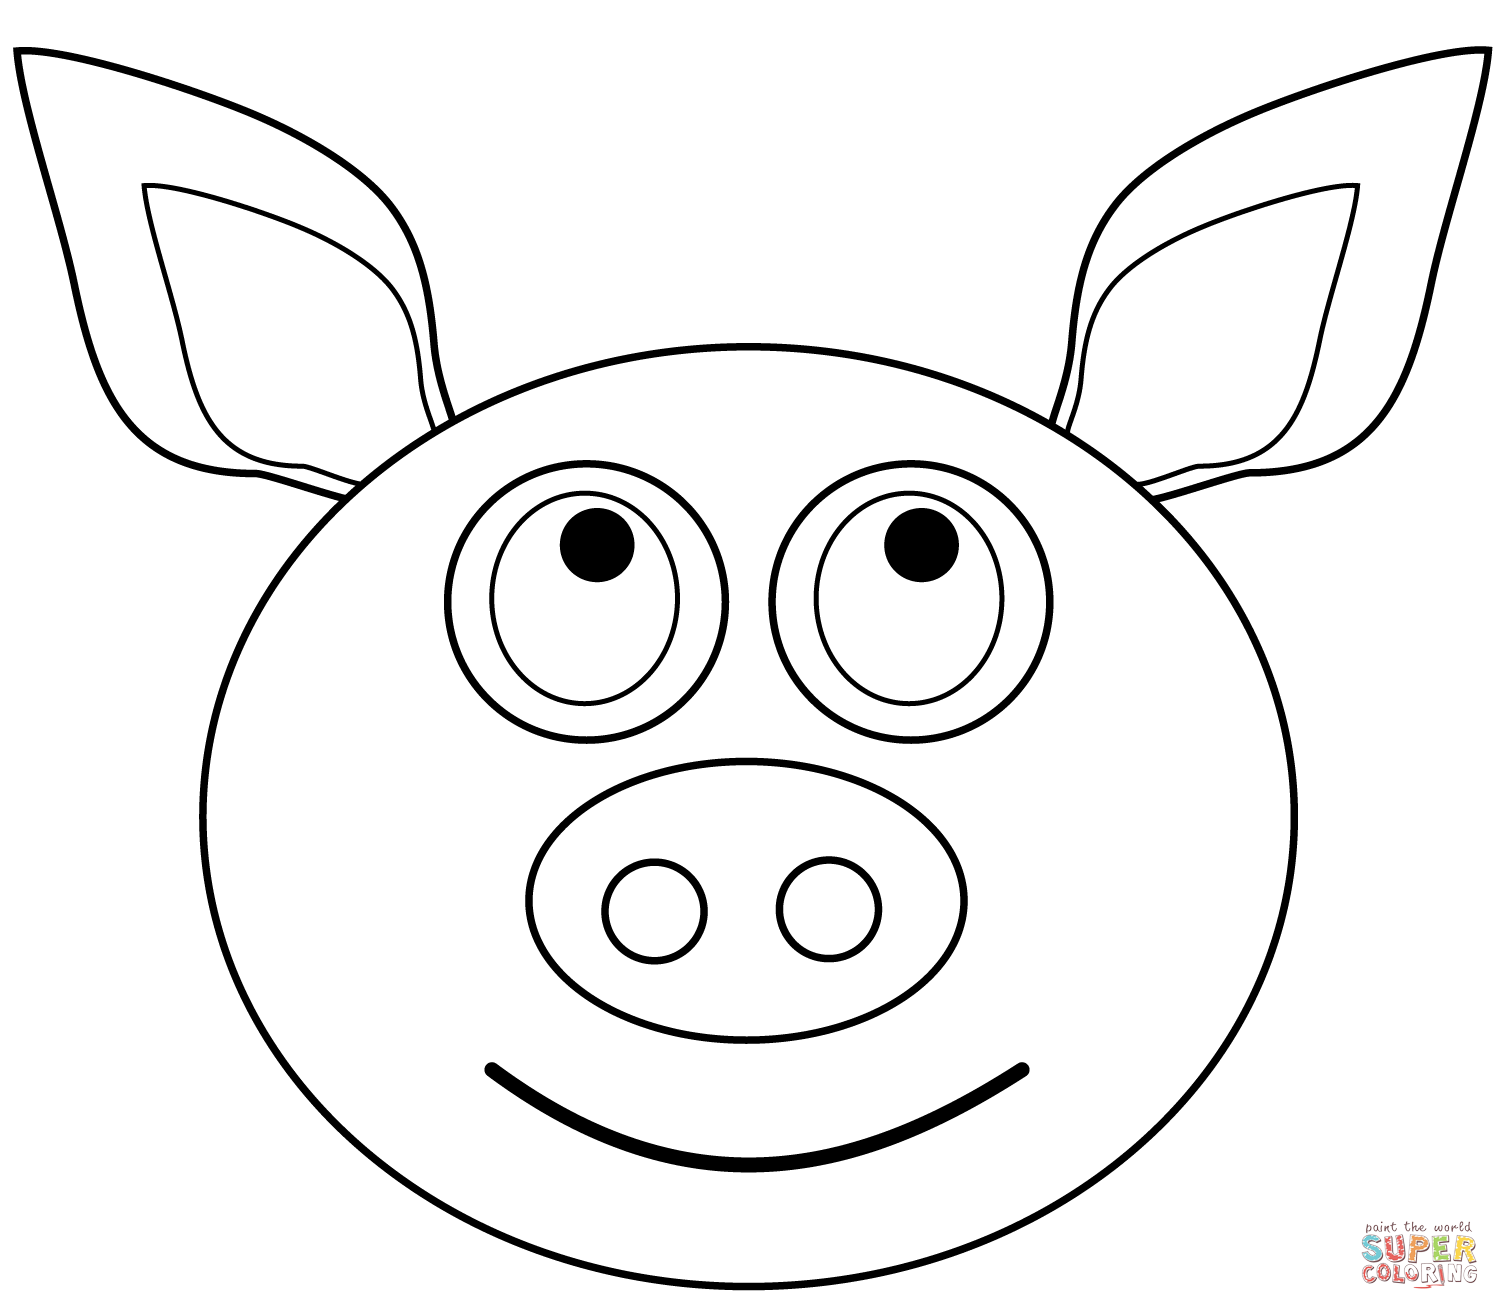 Pot Bellied Pig Coloring Pages